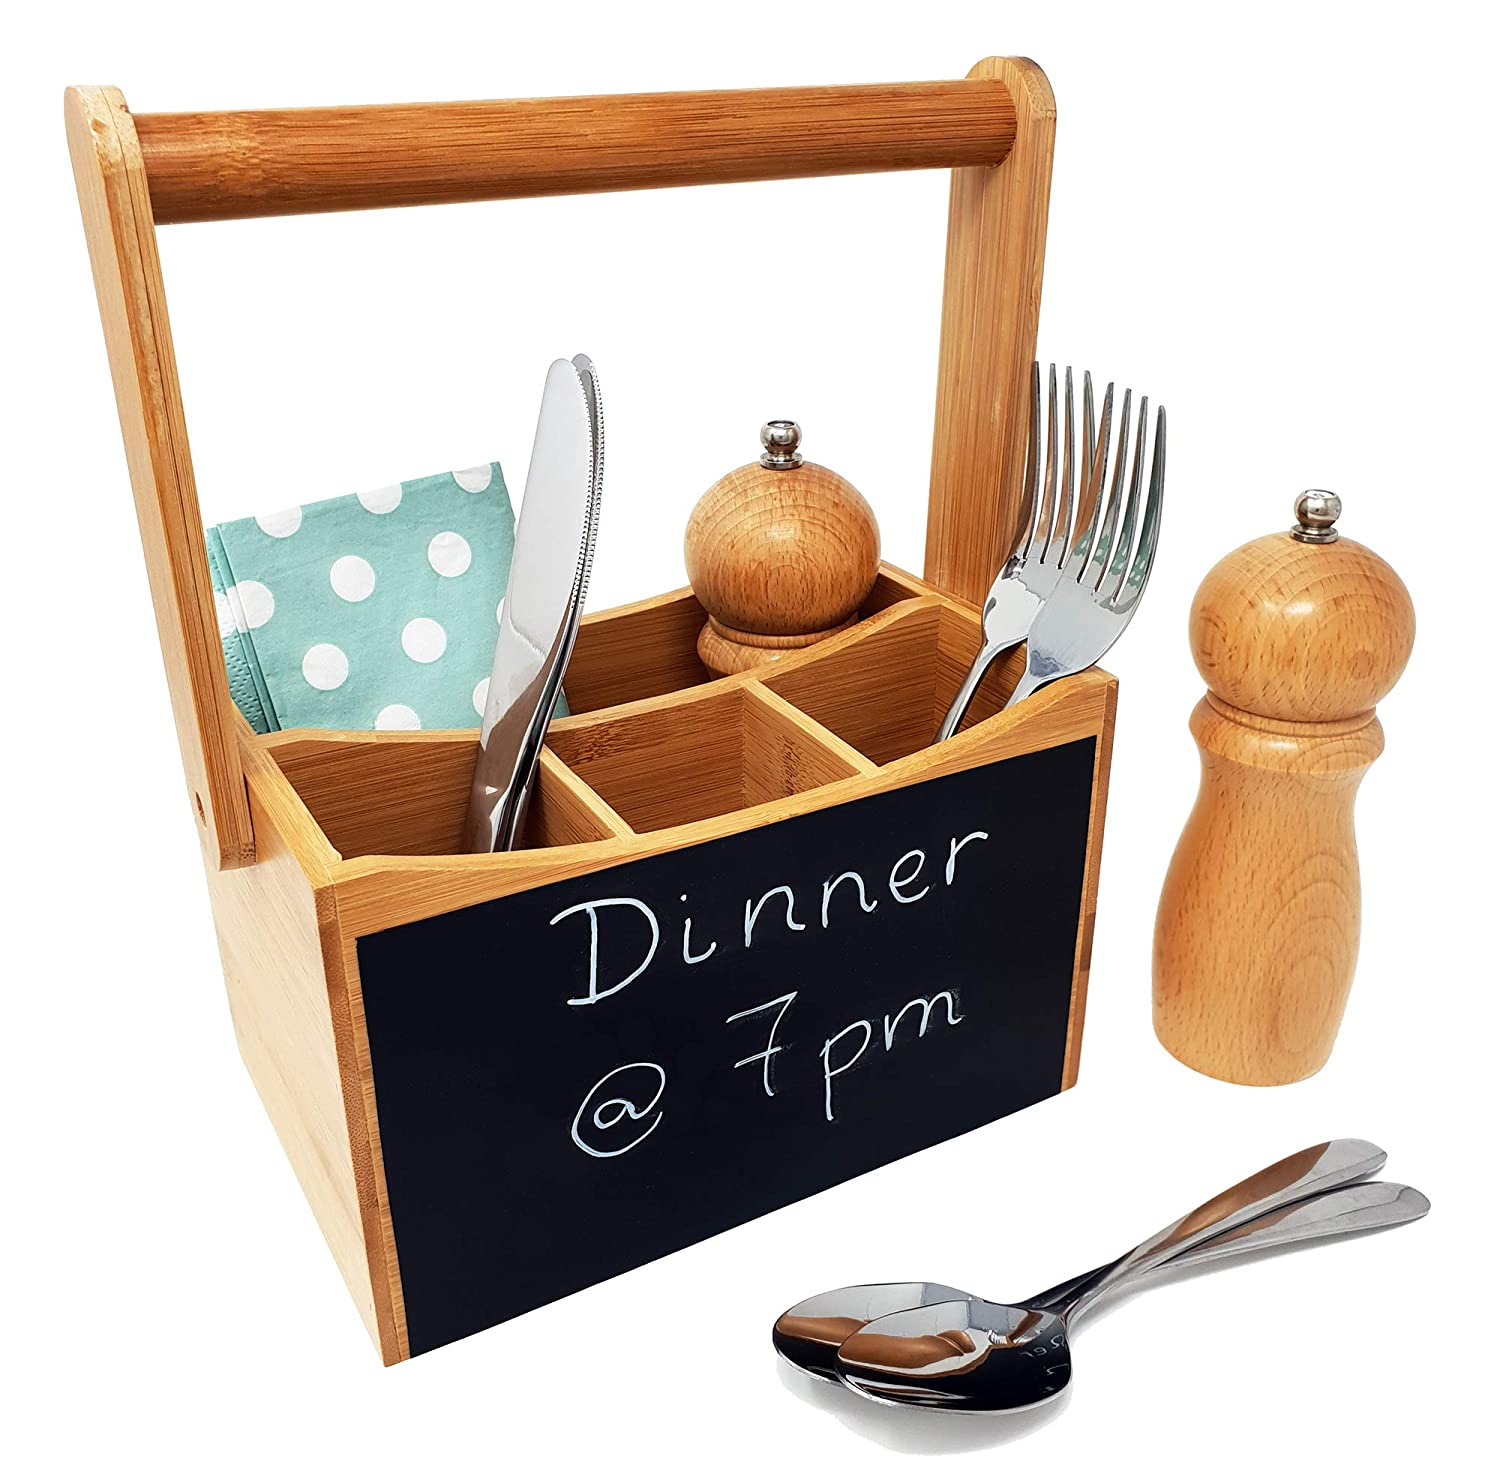 Carry Handle with Chalk Board Perfect for Home//Restaurant//BBQ 4 Compartments for Cutlery /& Condiments Organiser CherryTreeHouse Cutlery Caddy//Utensil Holder Ideal Gift//Present